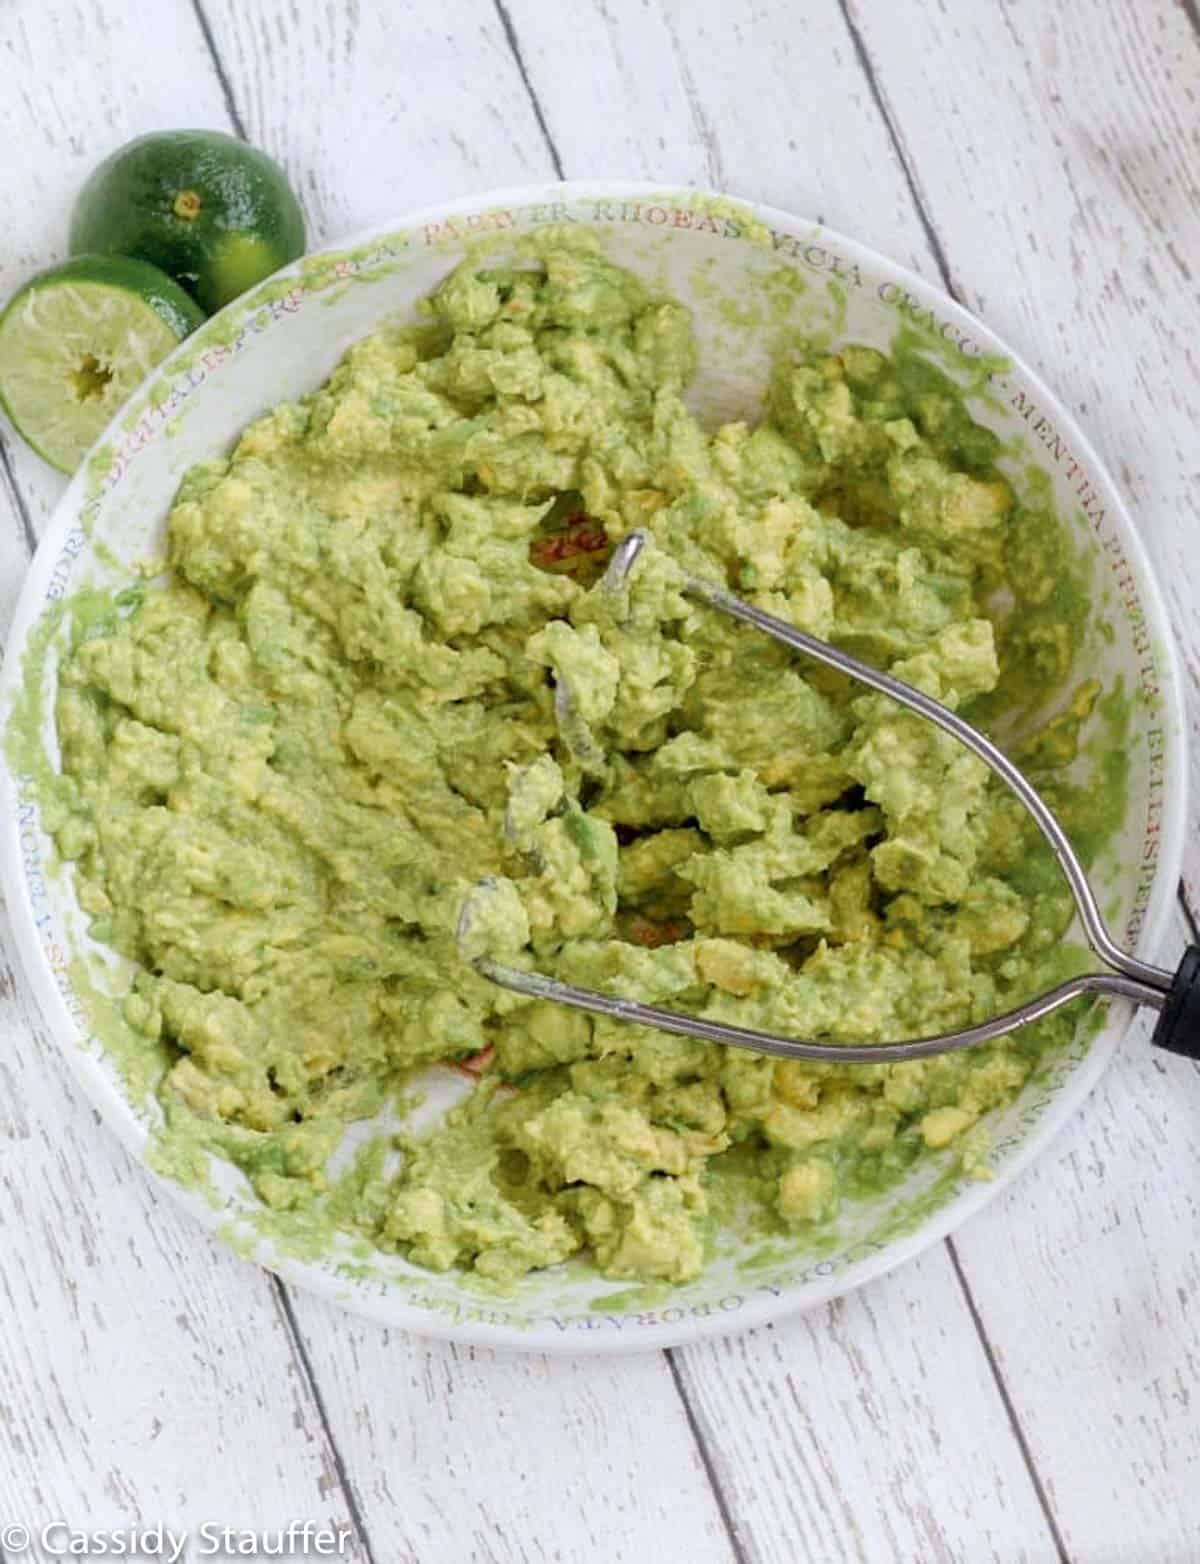 Avocado mashed in a shallow white bowl